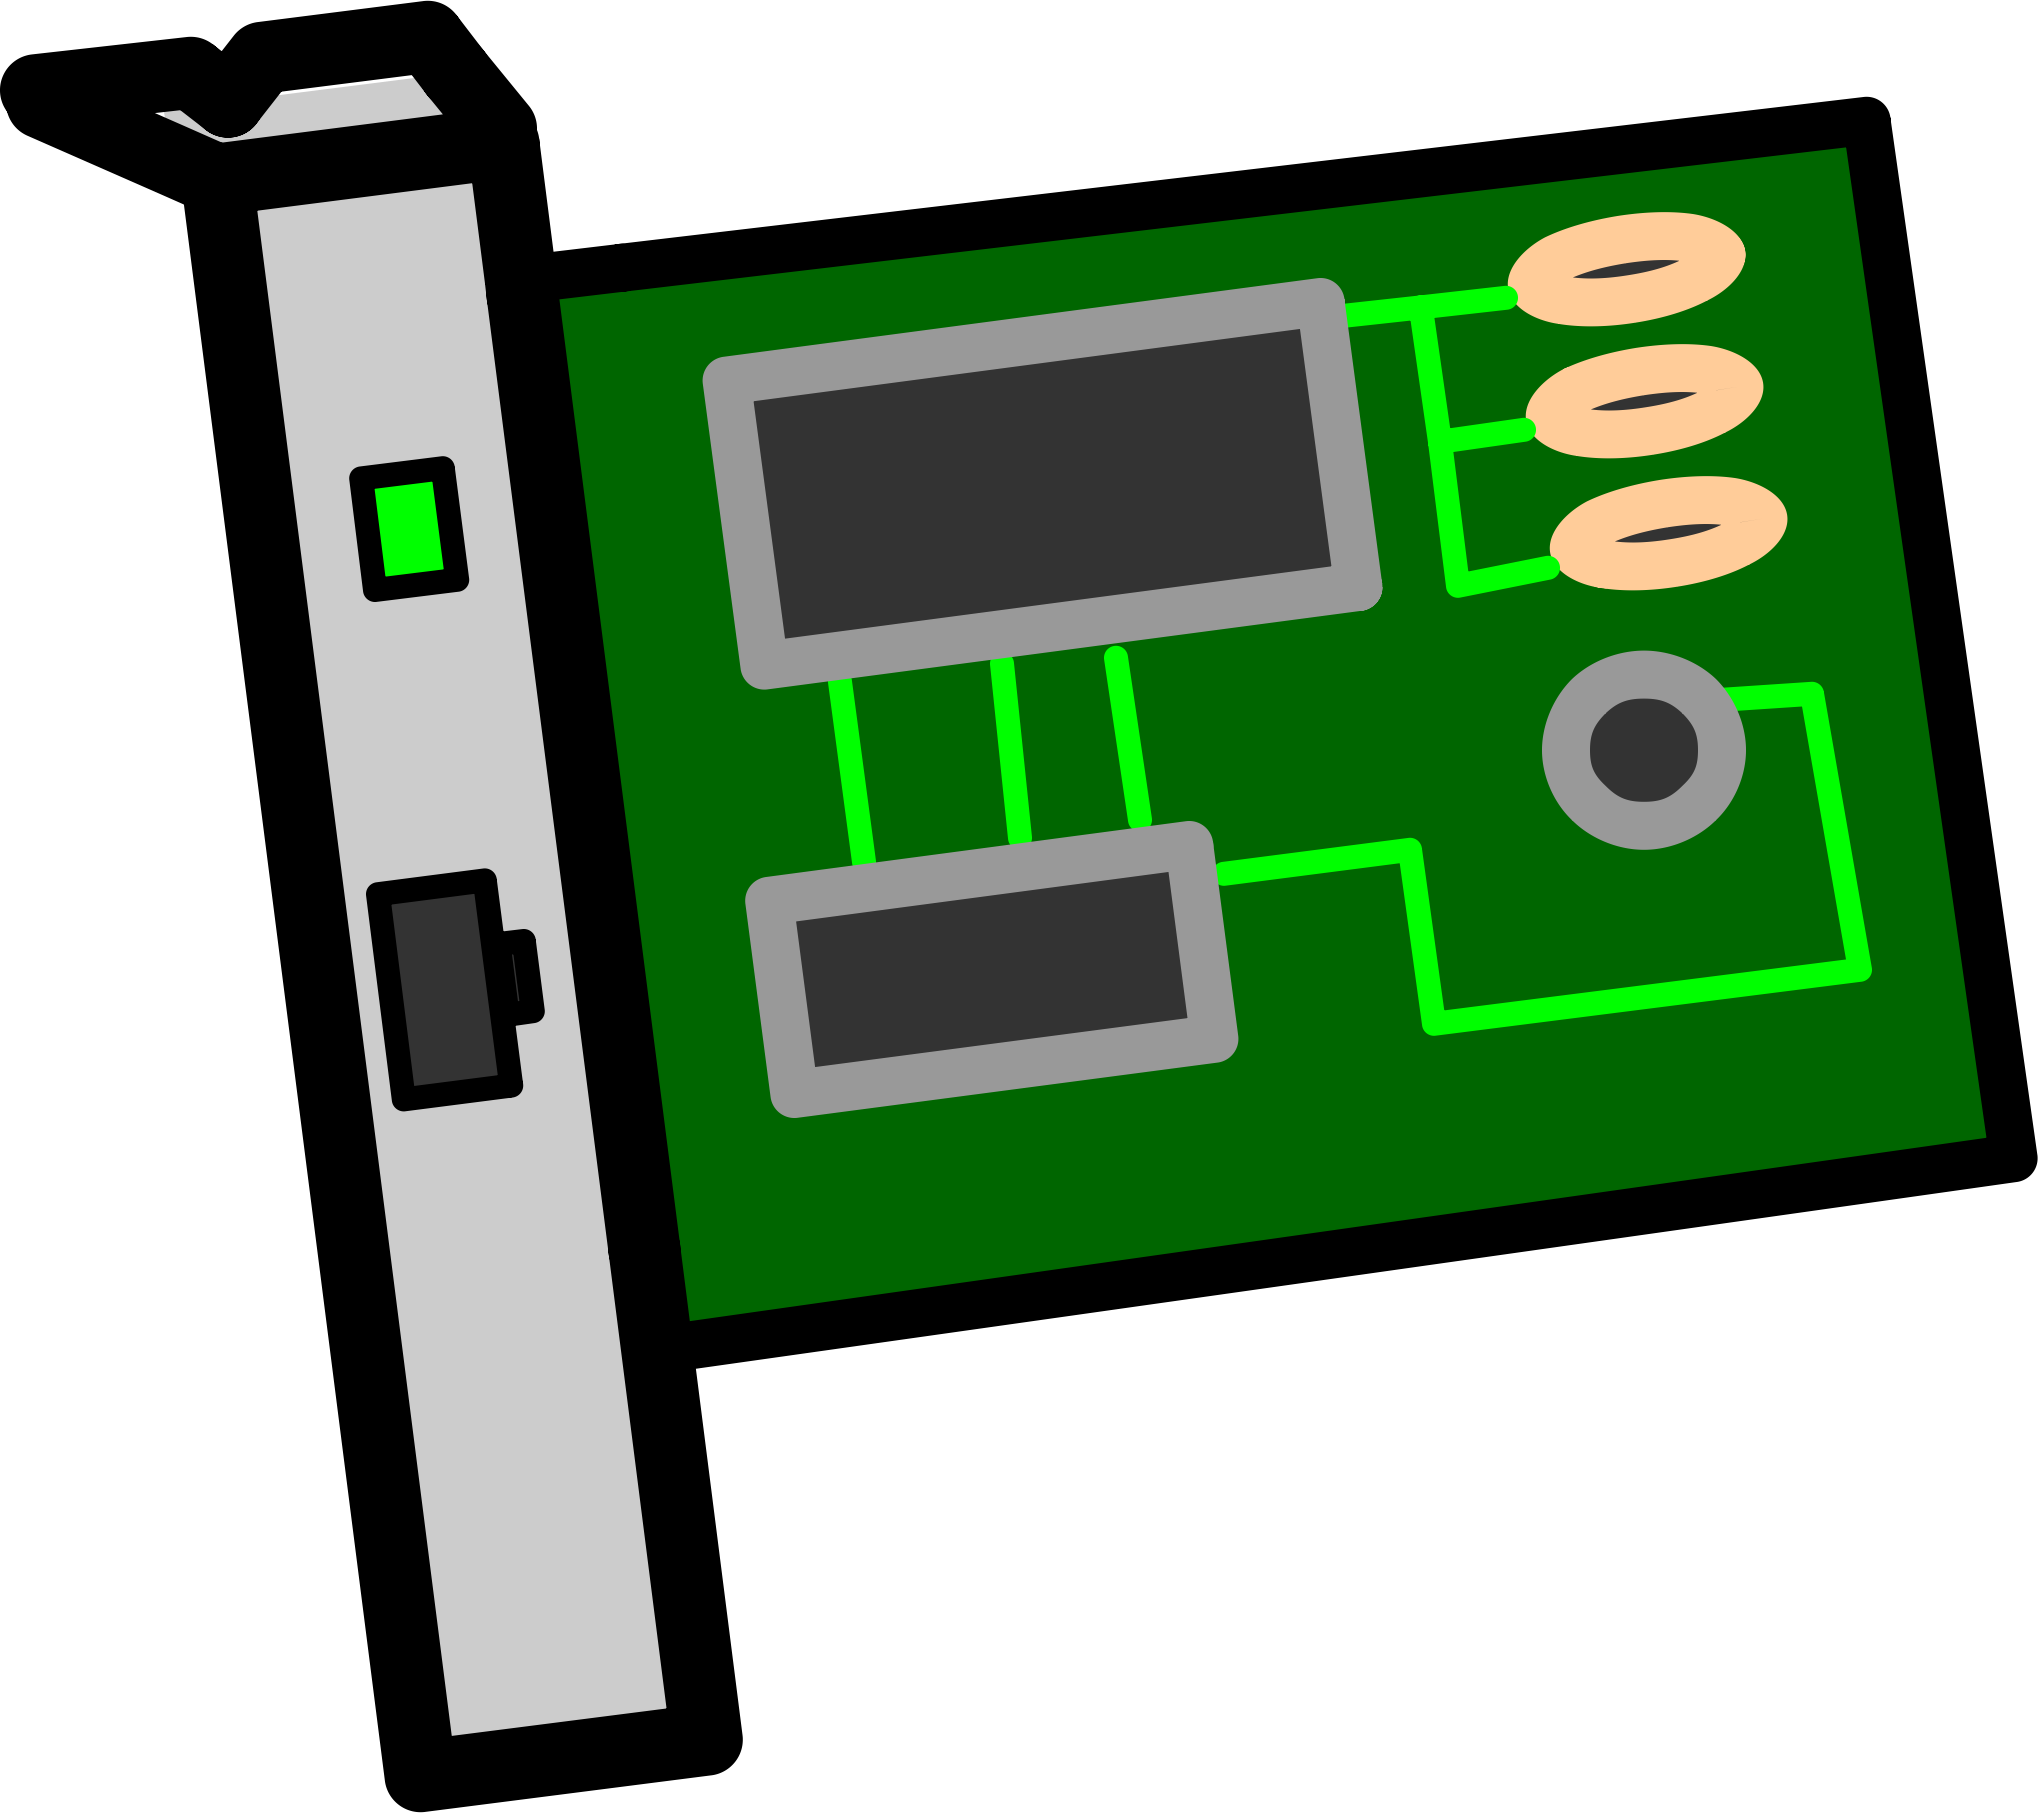 Network Interface Card Labelled by witcombem